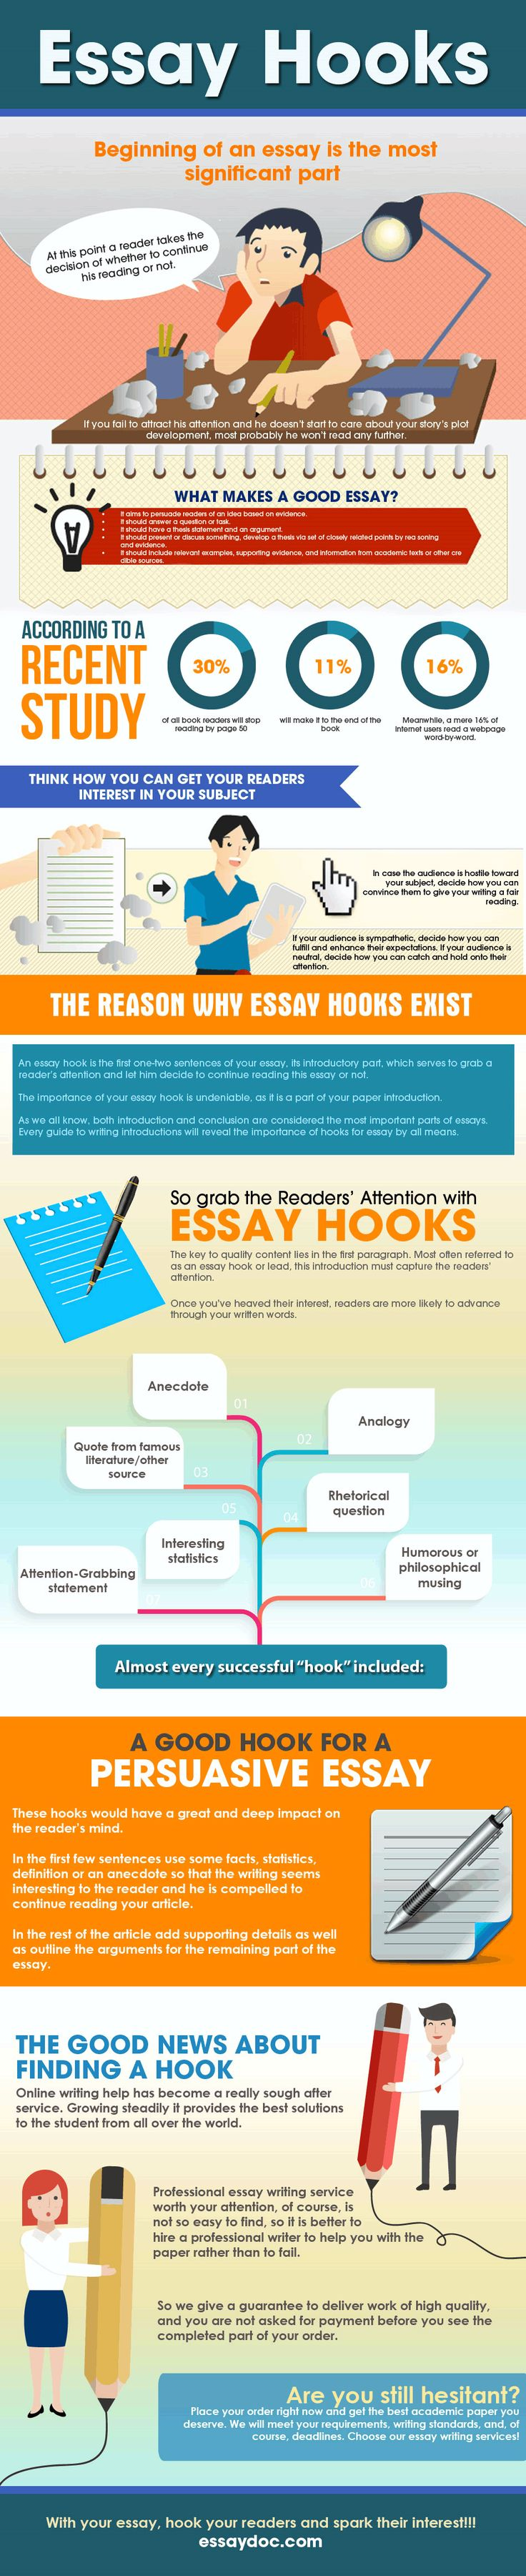 Science And Technology Essays Essay Hooks Infographic Example Of Essay Writing In English also Interesting Essay Topics For High School Students Best  Essay Writing Tips Ideas On Pinterest  Better Synonym  Good High School Essay Topics